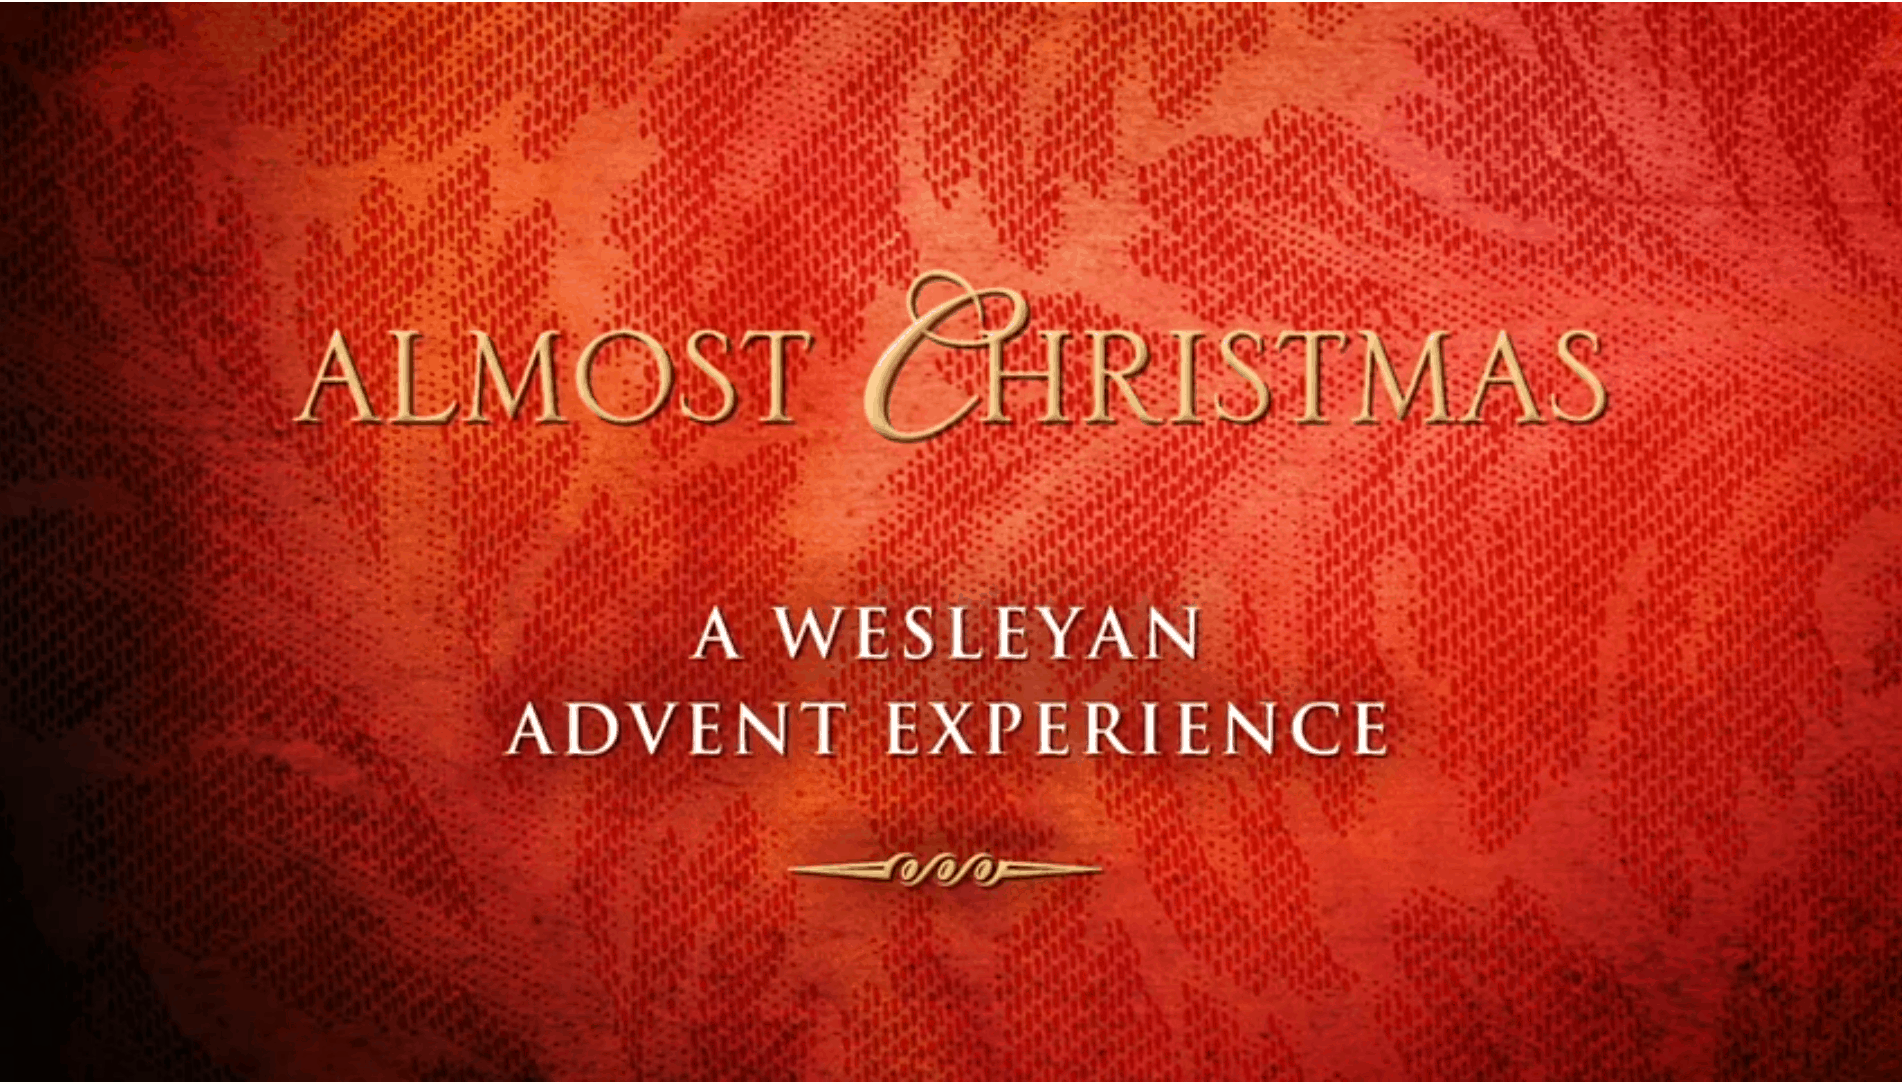 Wesley 124: Almost Christmas: A Wesleyan Advent Experience (Zoom)